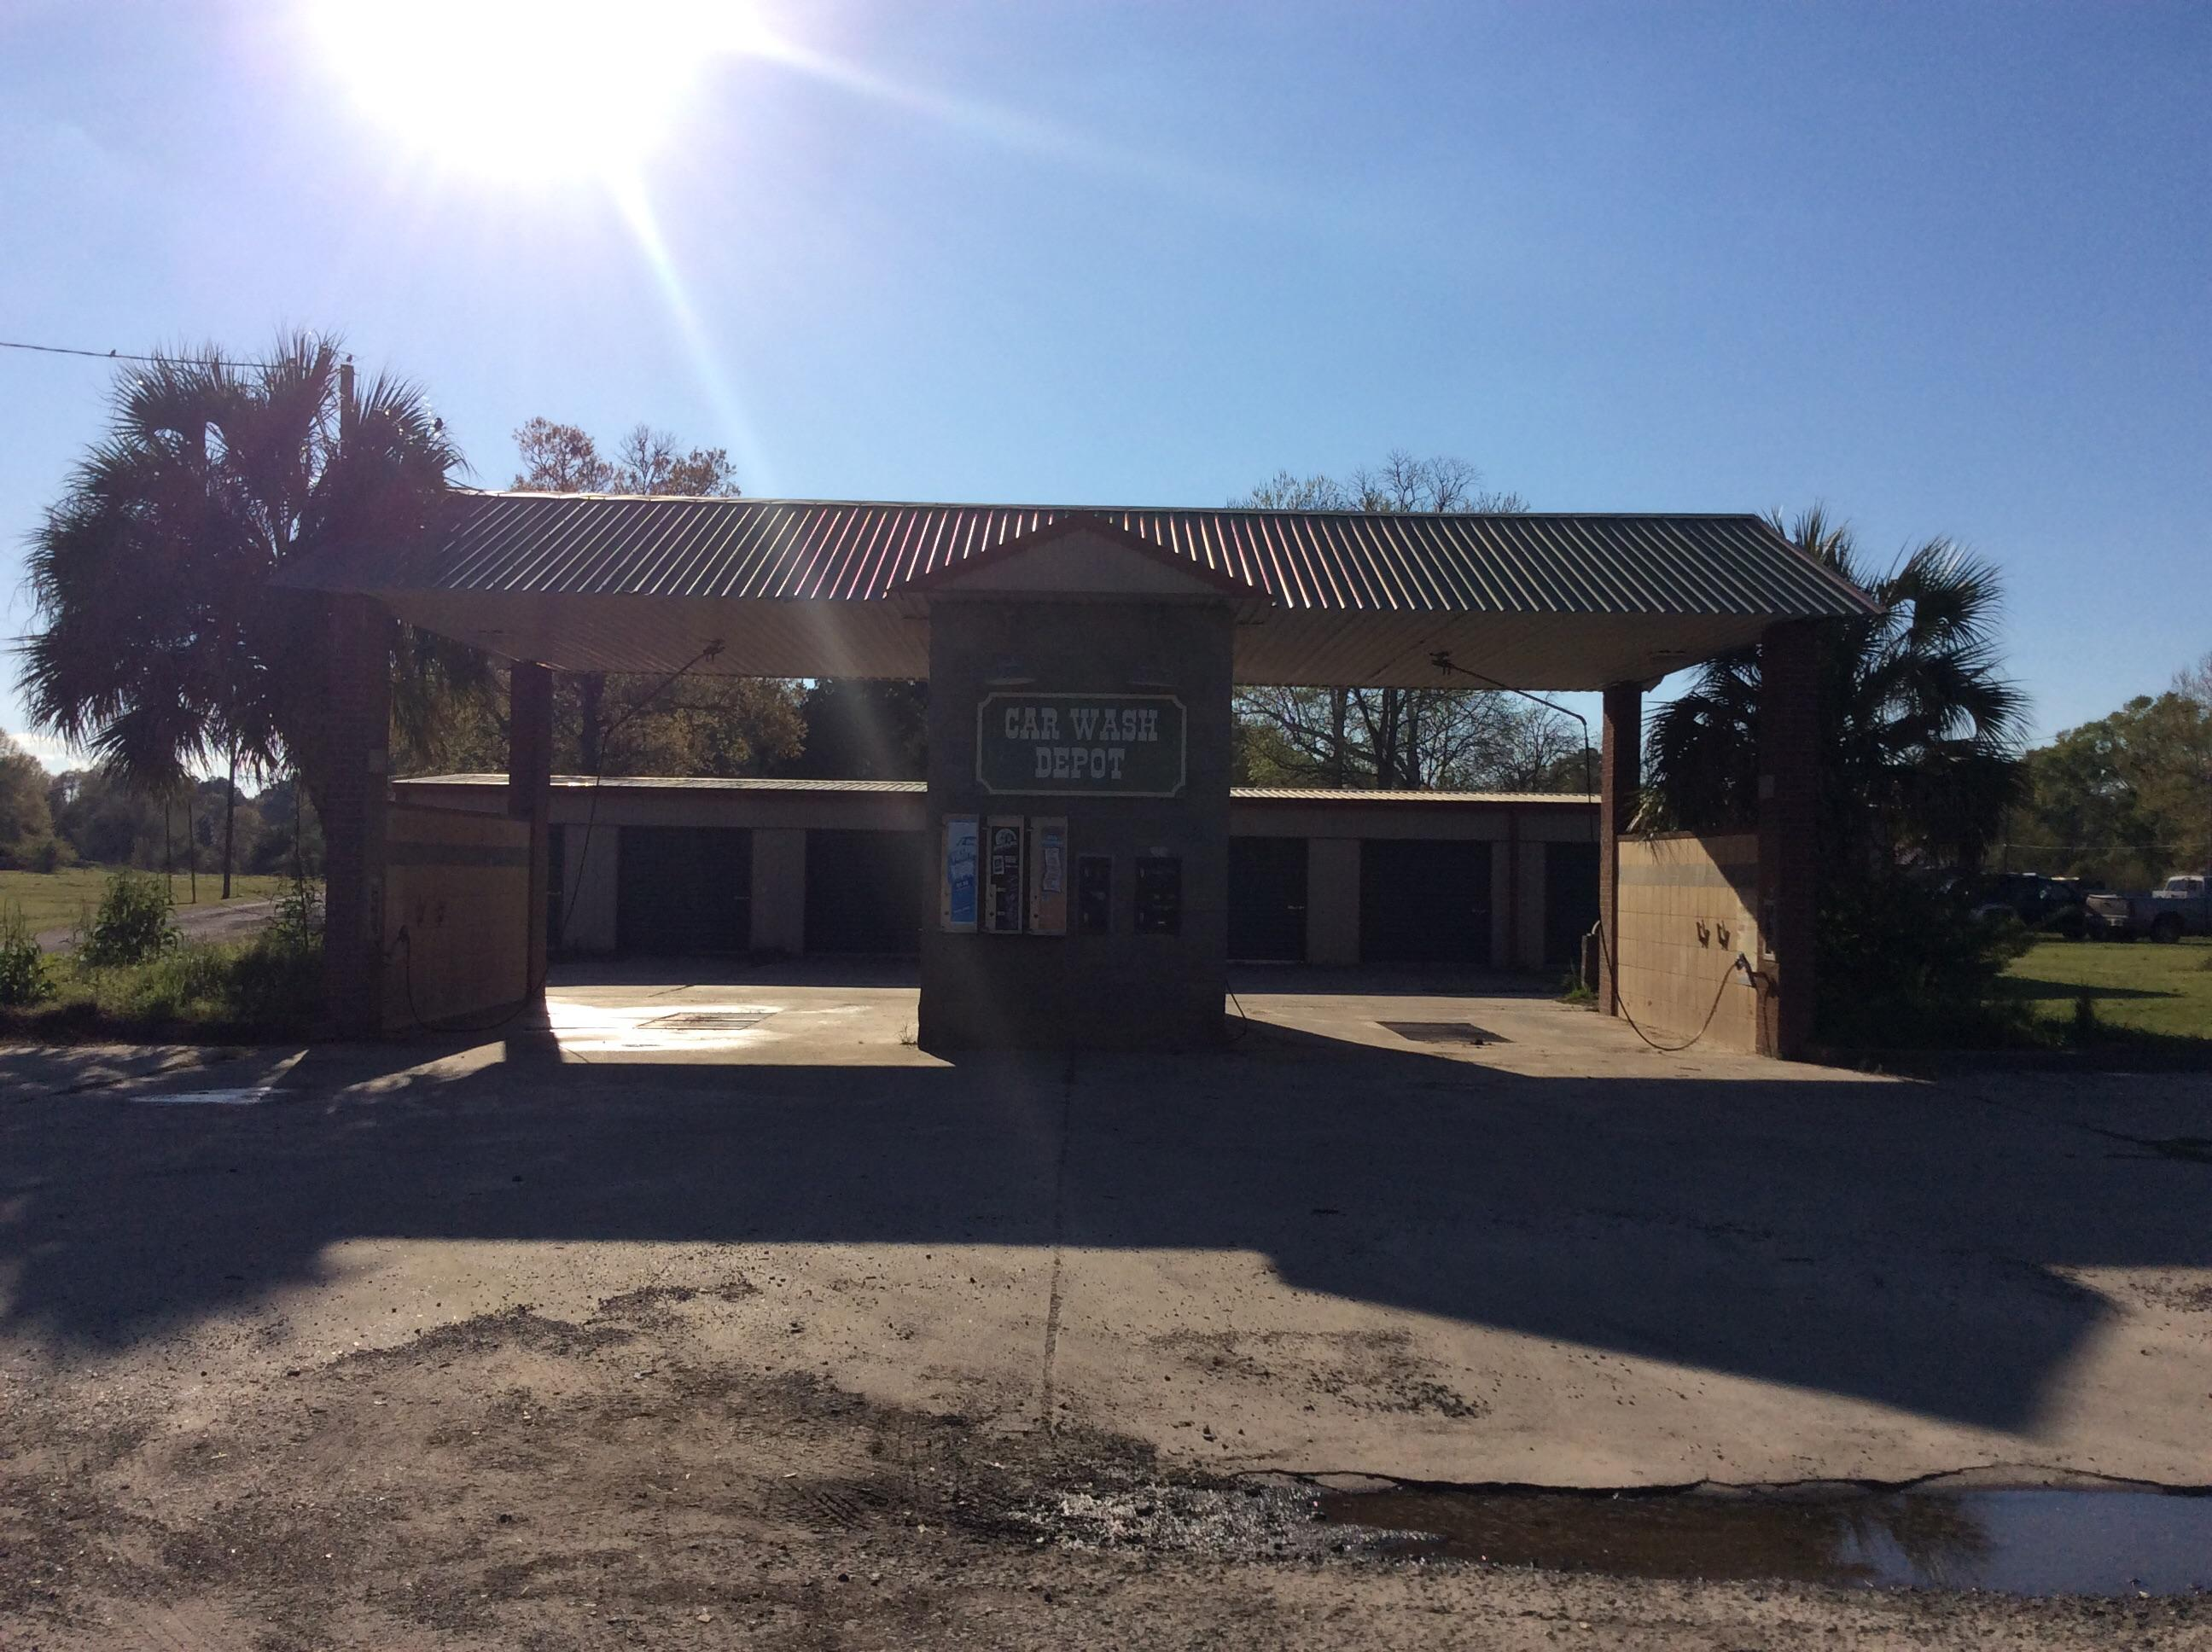 Merryville commercial property for sale, 972 Hwy 110, Merryville LA - $95,000